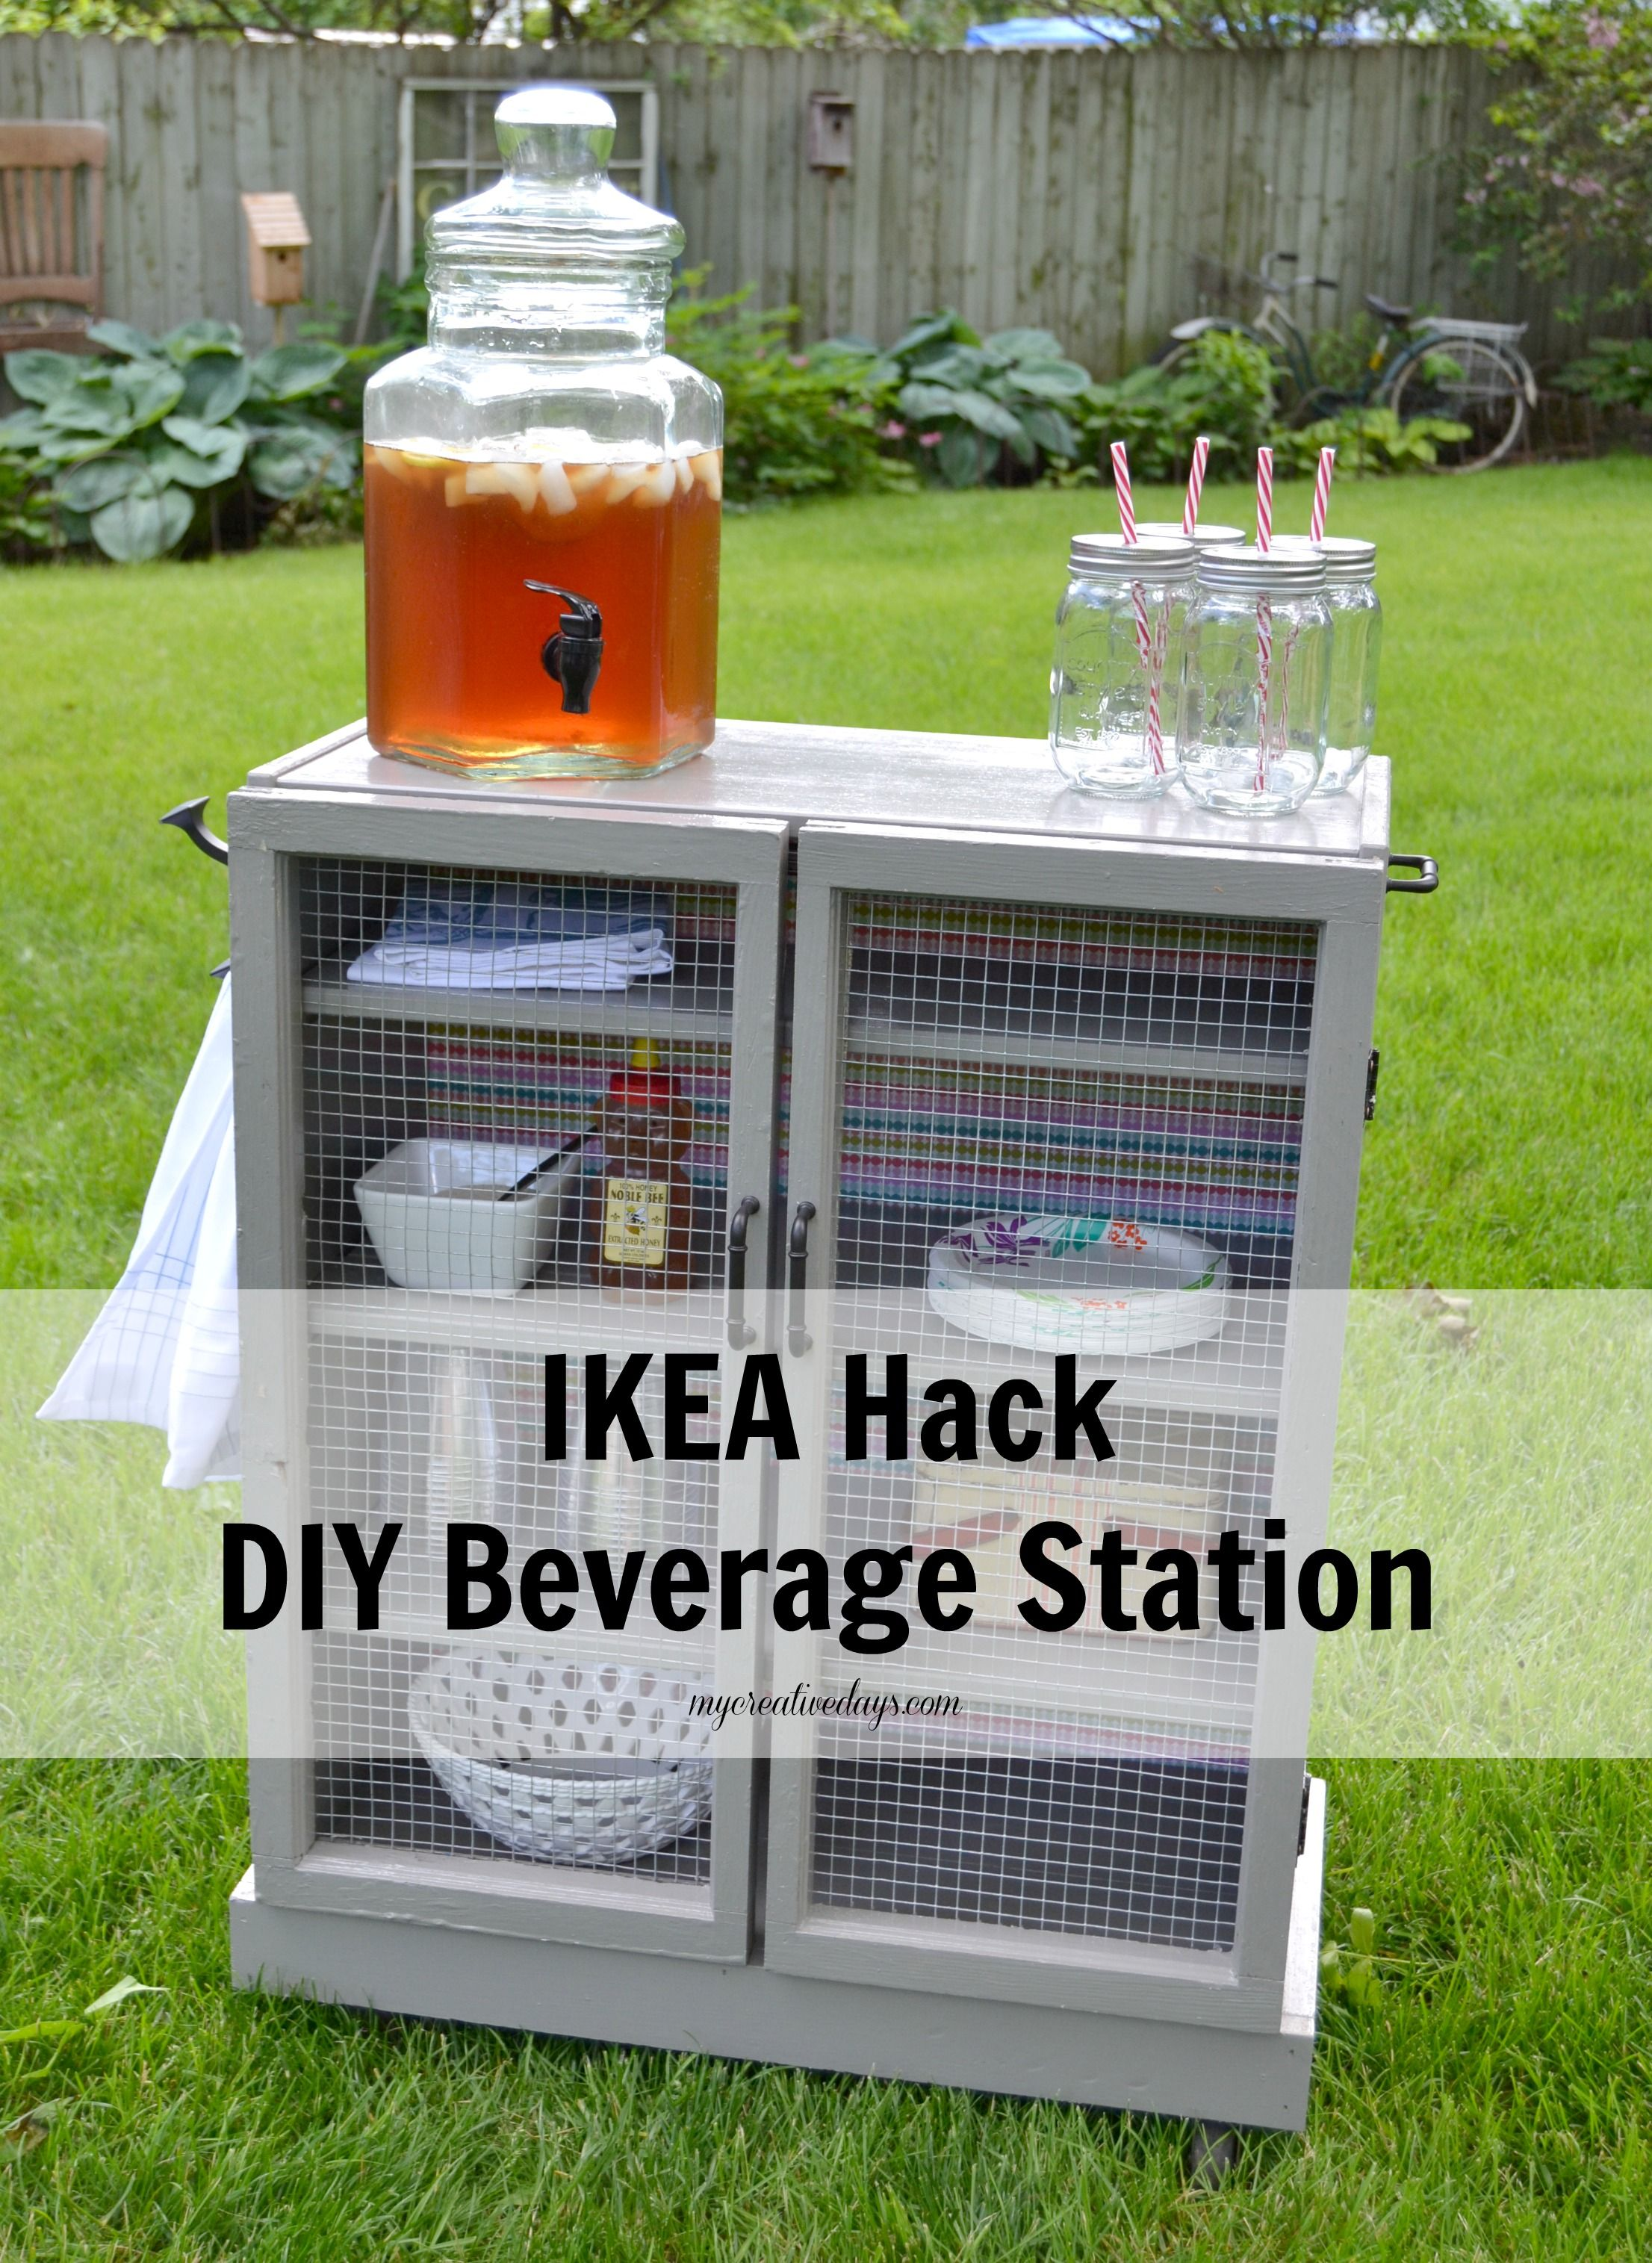 ikea hack diy beverage station ikea hacks diy home pinterest hacks m bel und ikea. Black Bedroom Furniture Sets. Home Design Ideas